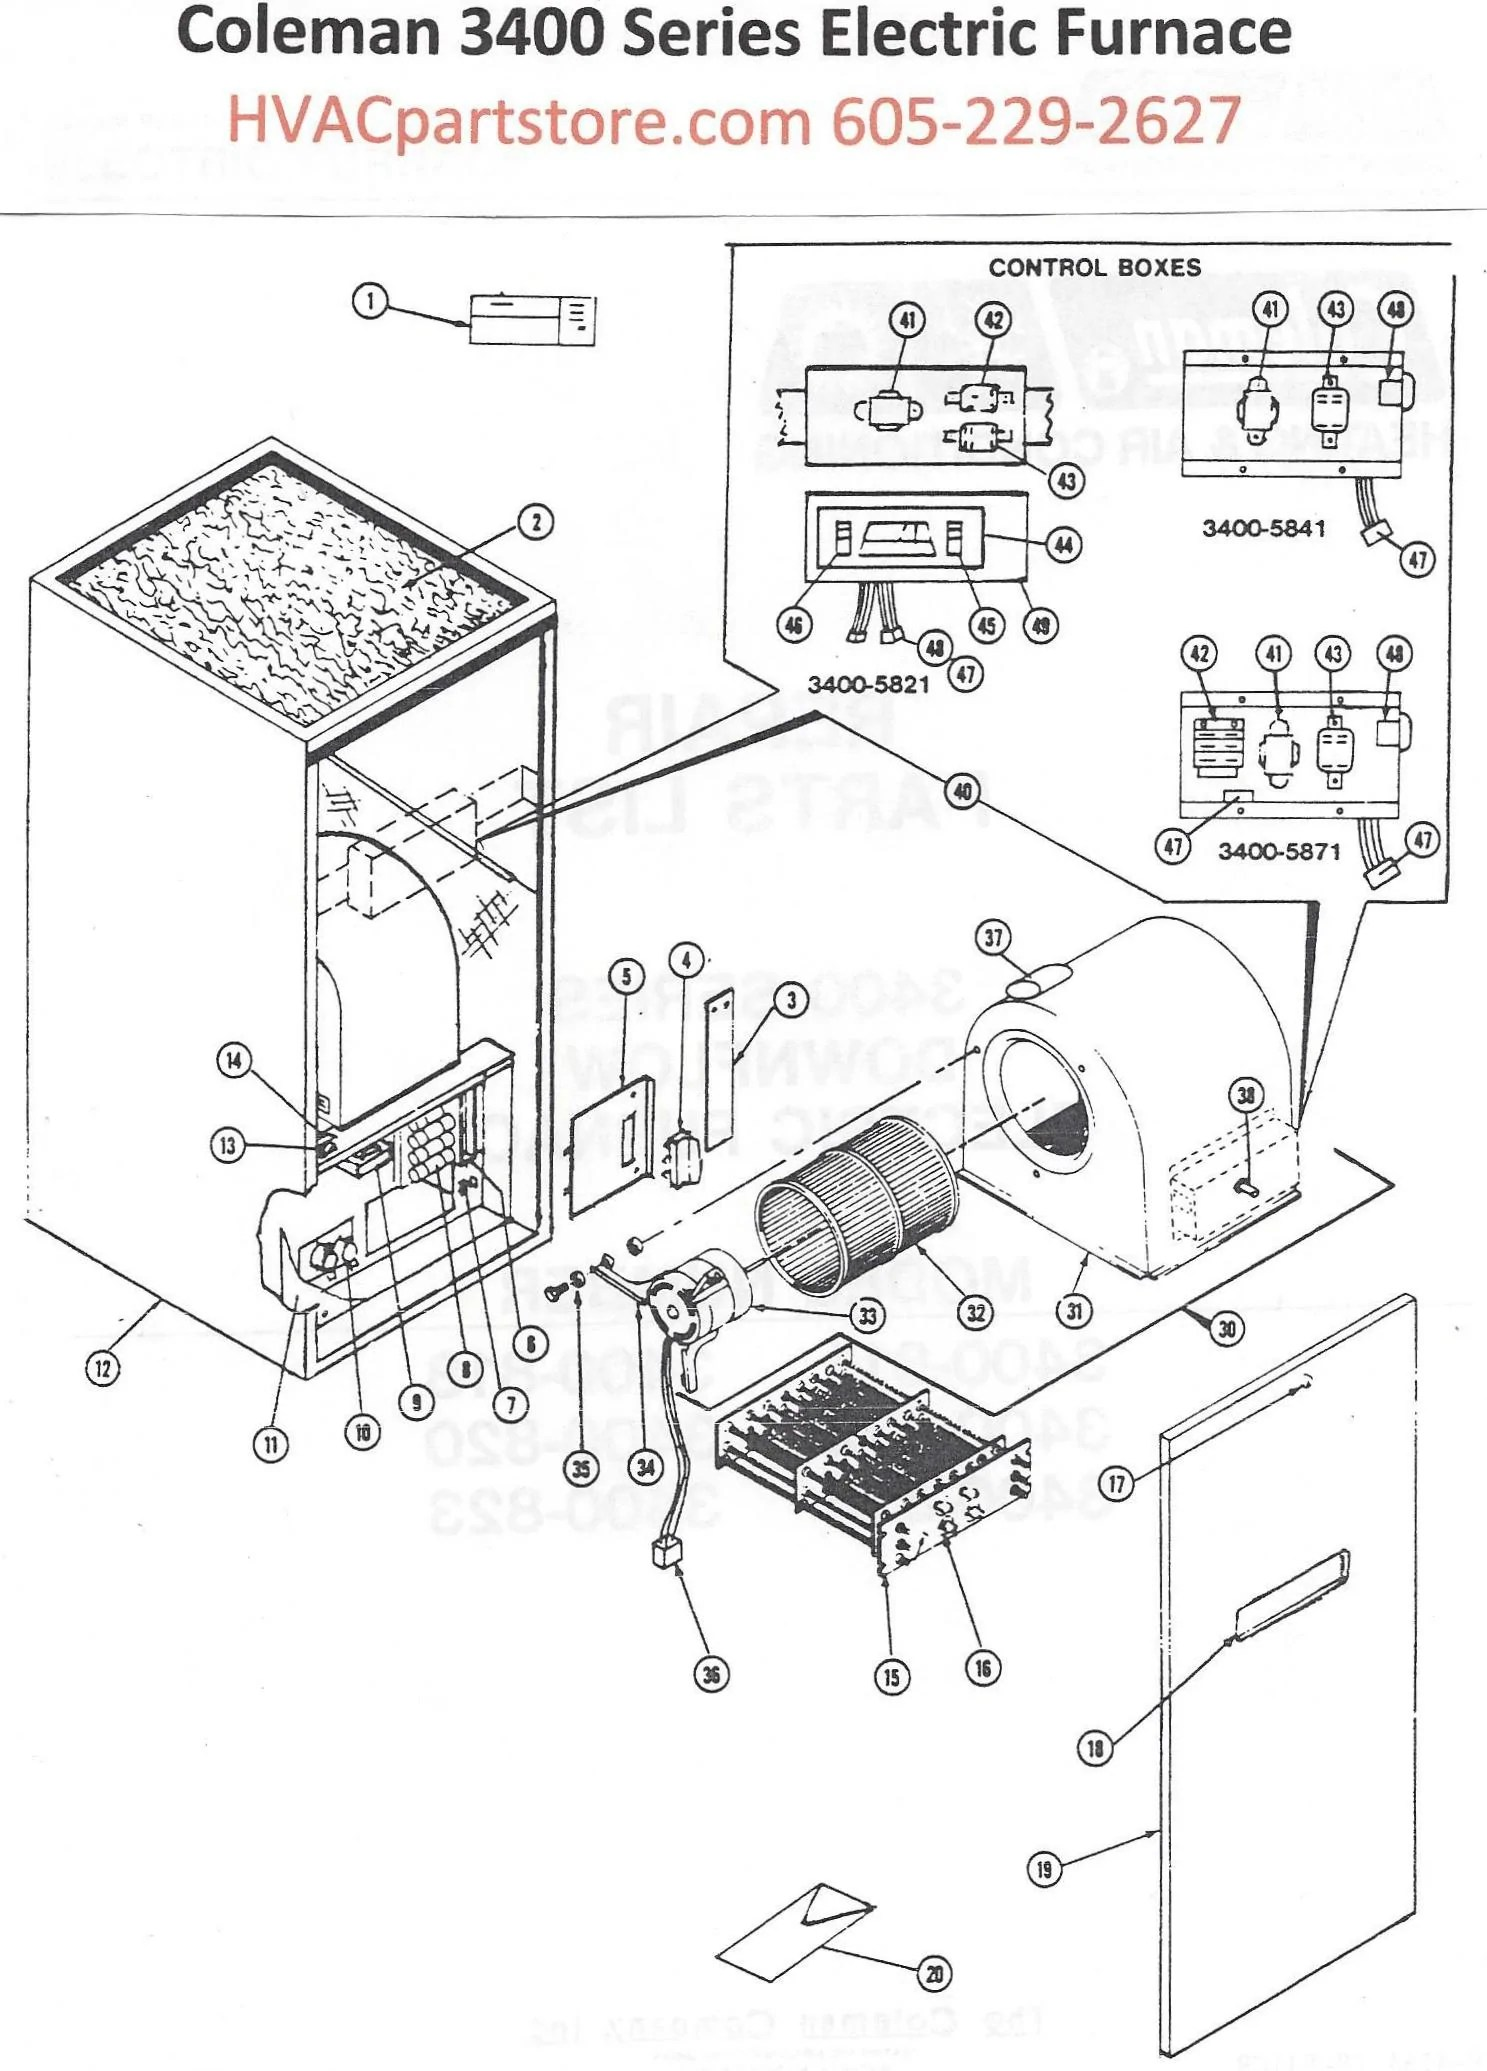 coleman ac heater wiring diagram 3400 wiring diagram third level3400 815 coleman electric furnace parts hvacpartstore [ 1487 x 2071 Pixel ]